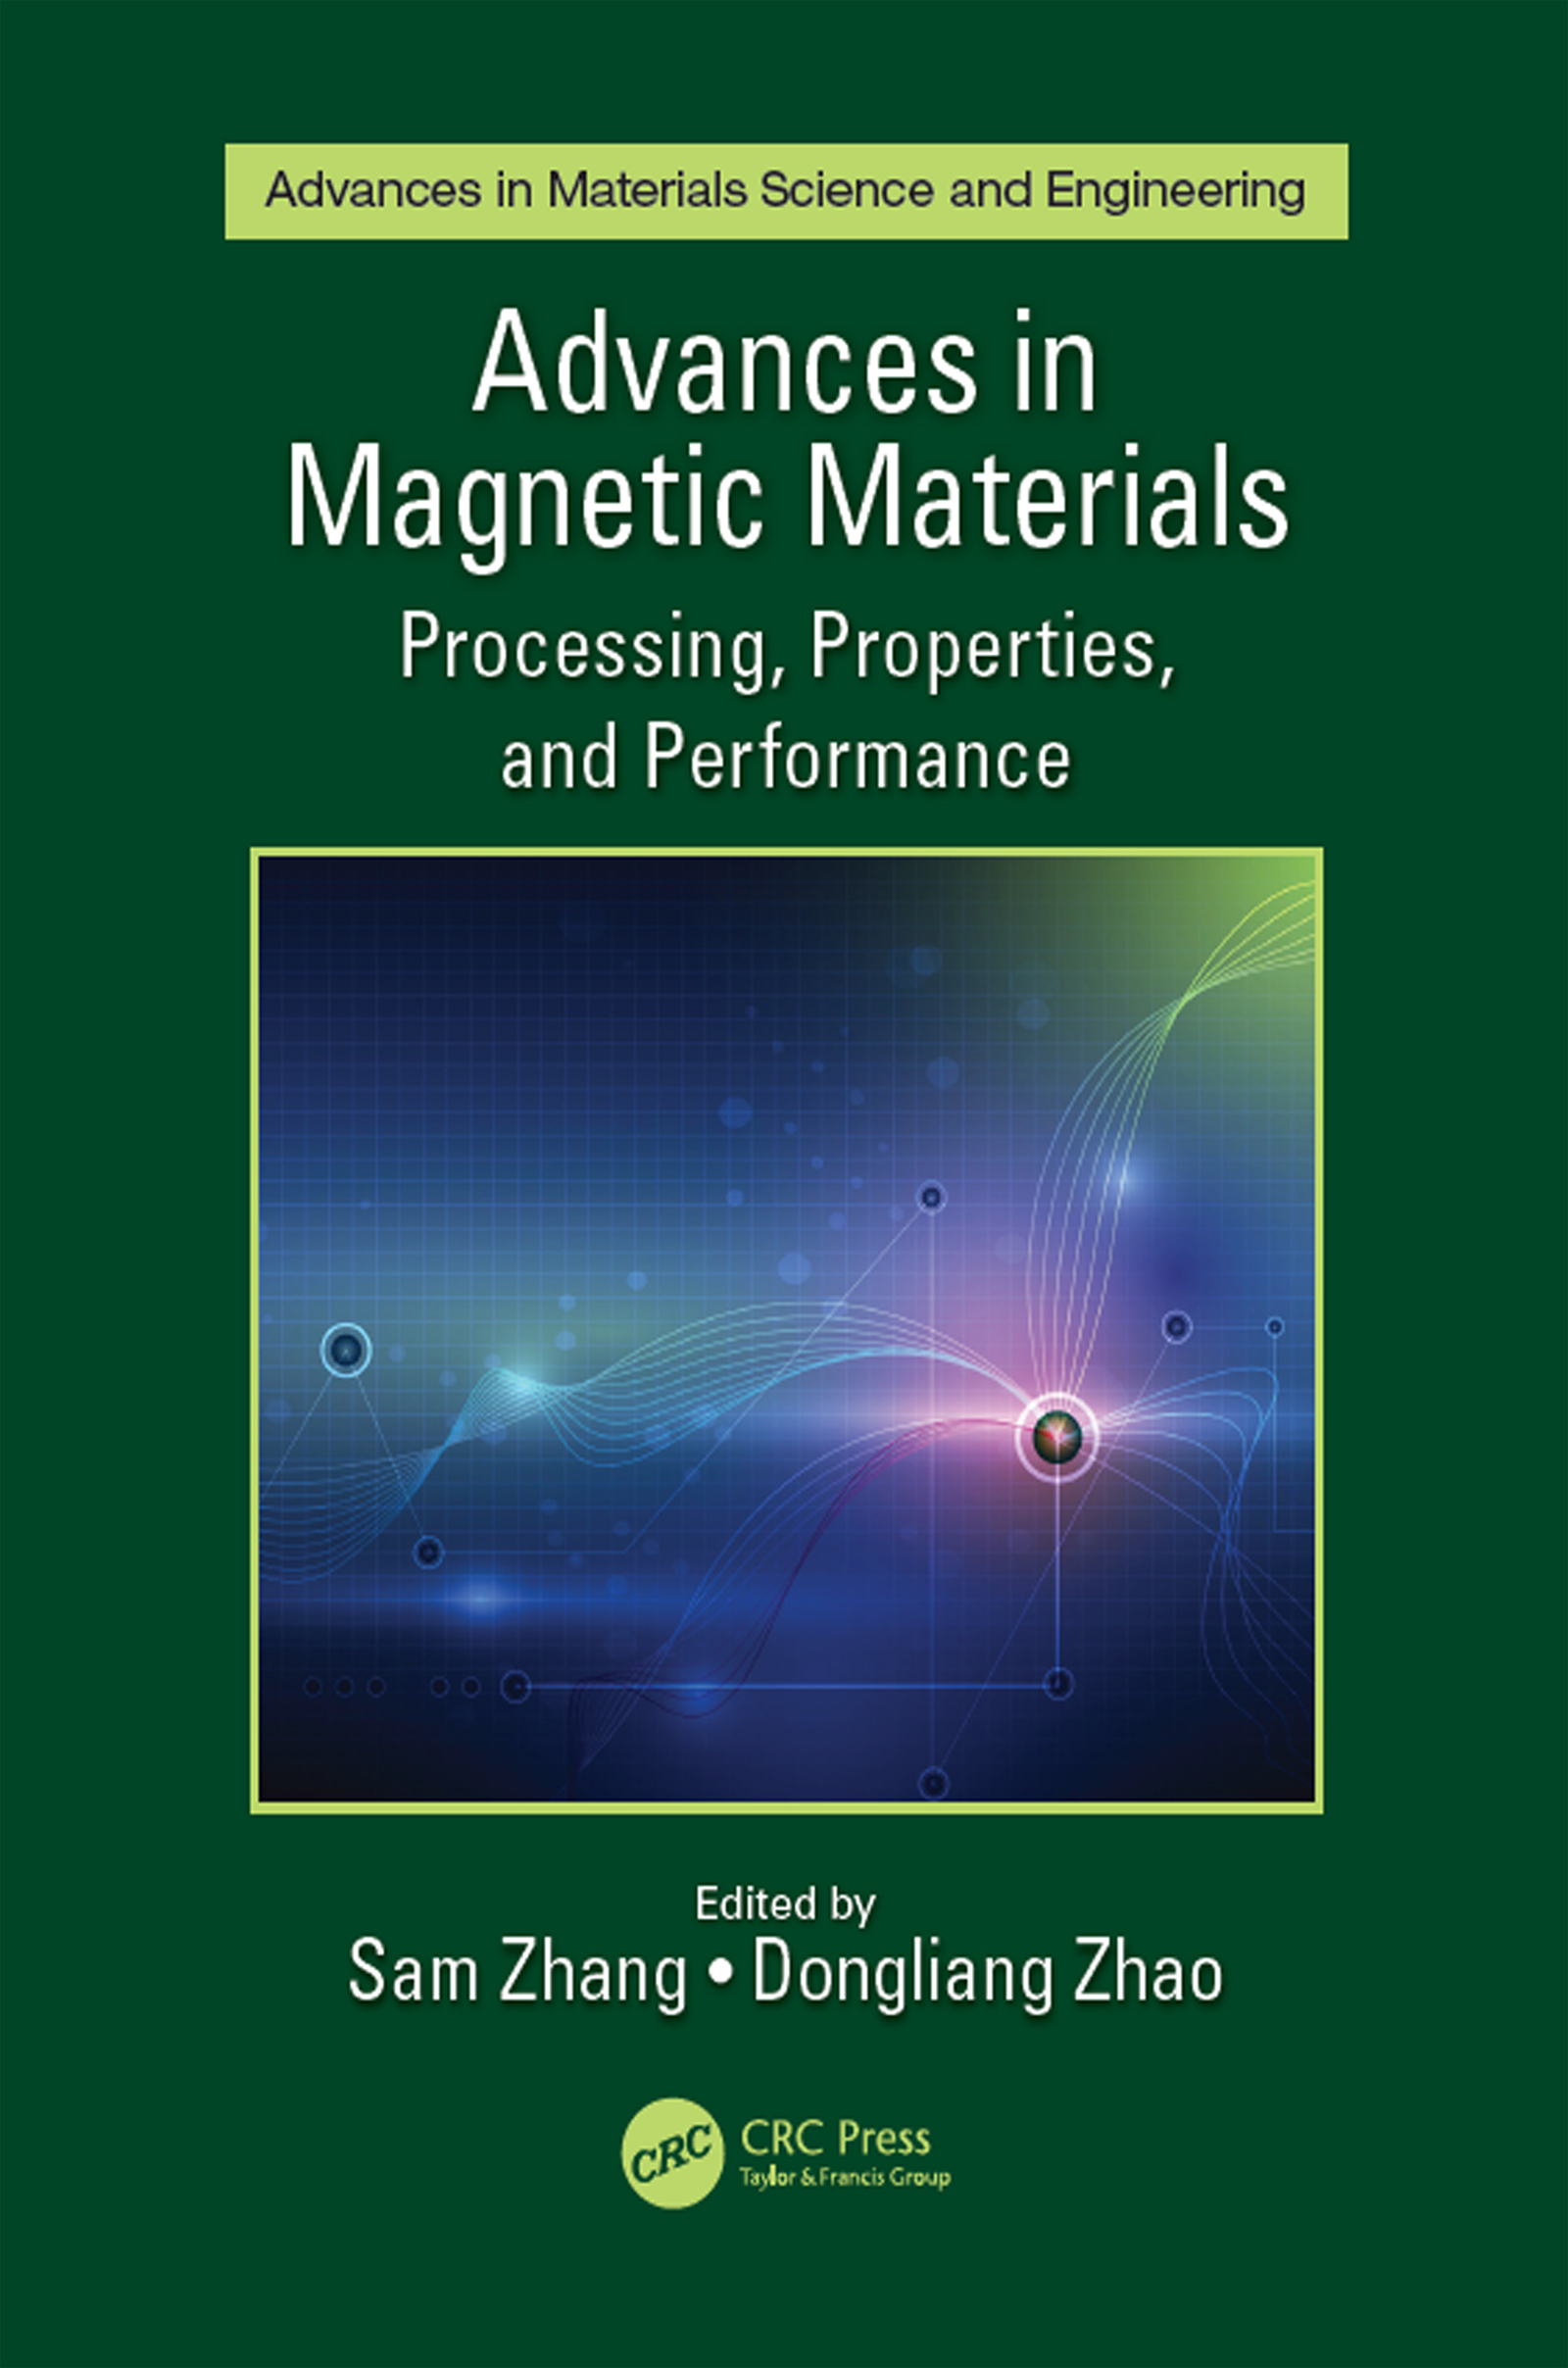 Advances in Magnetic Materials